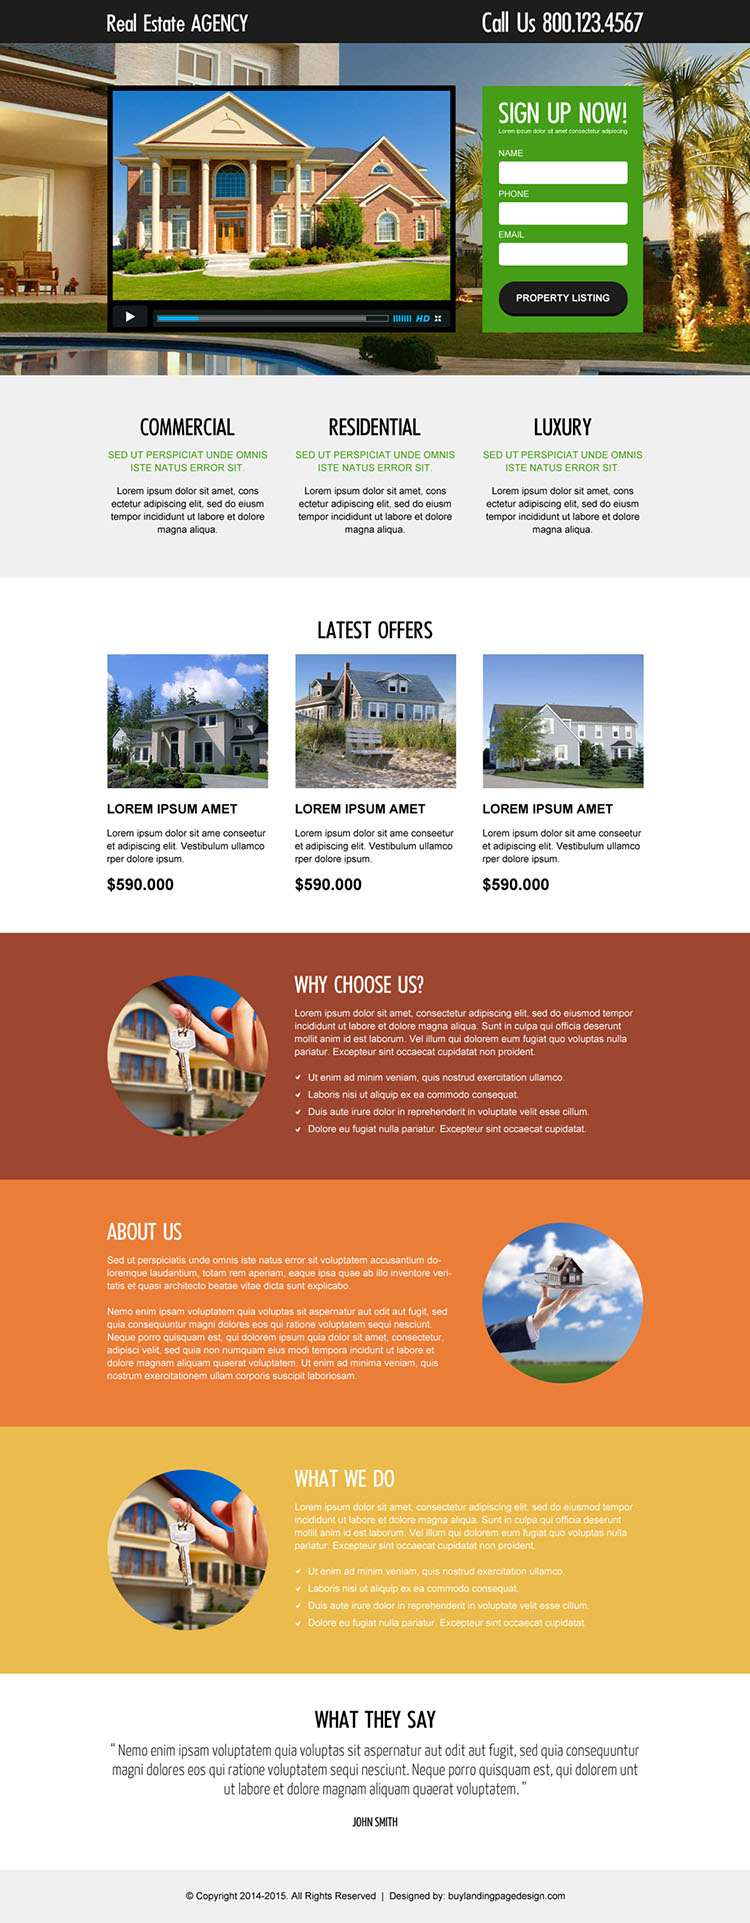 real estate agency lead generating and converting video landing page design